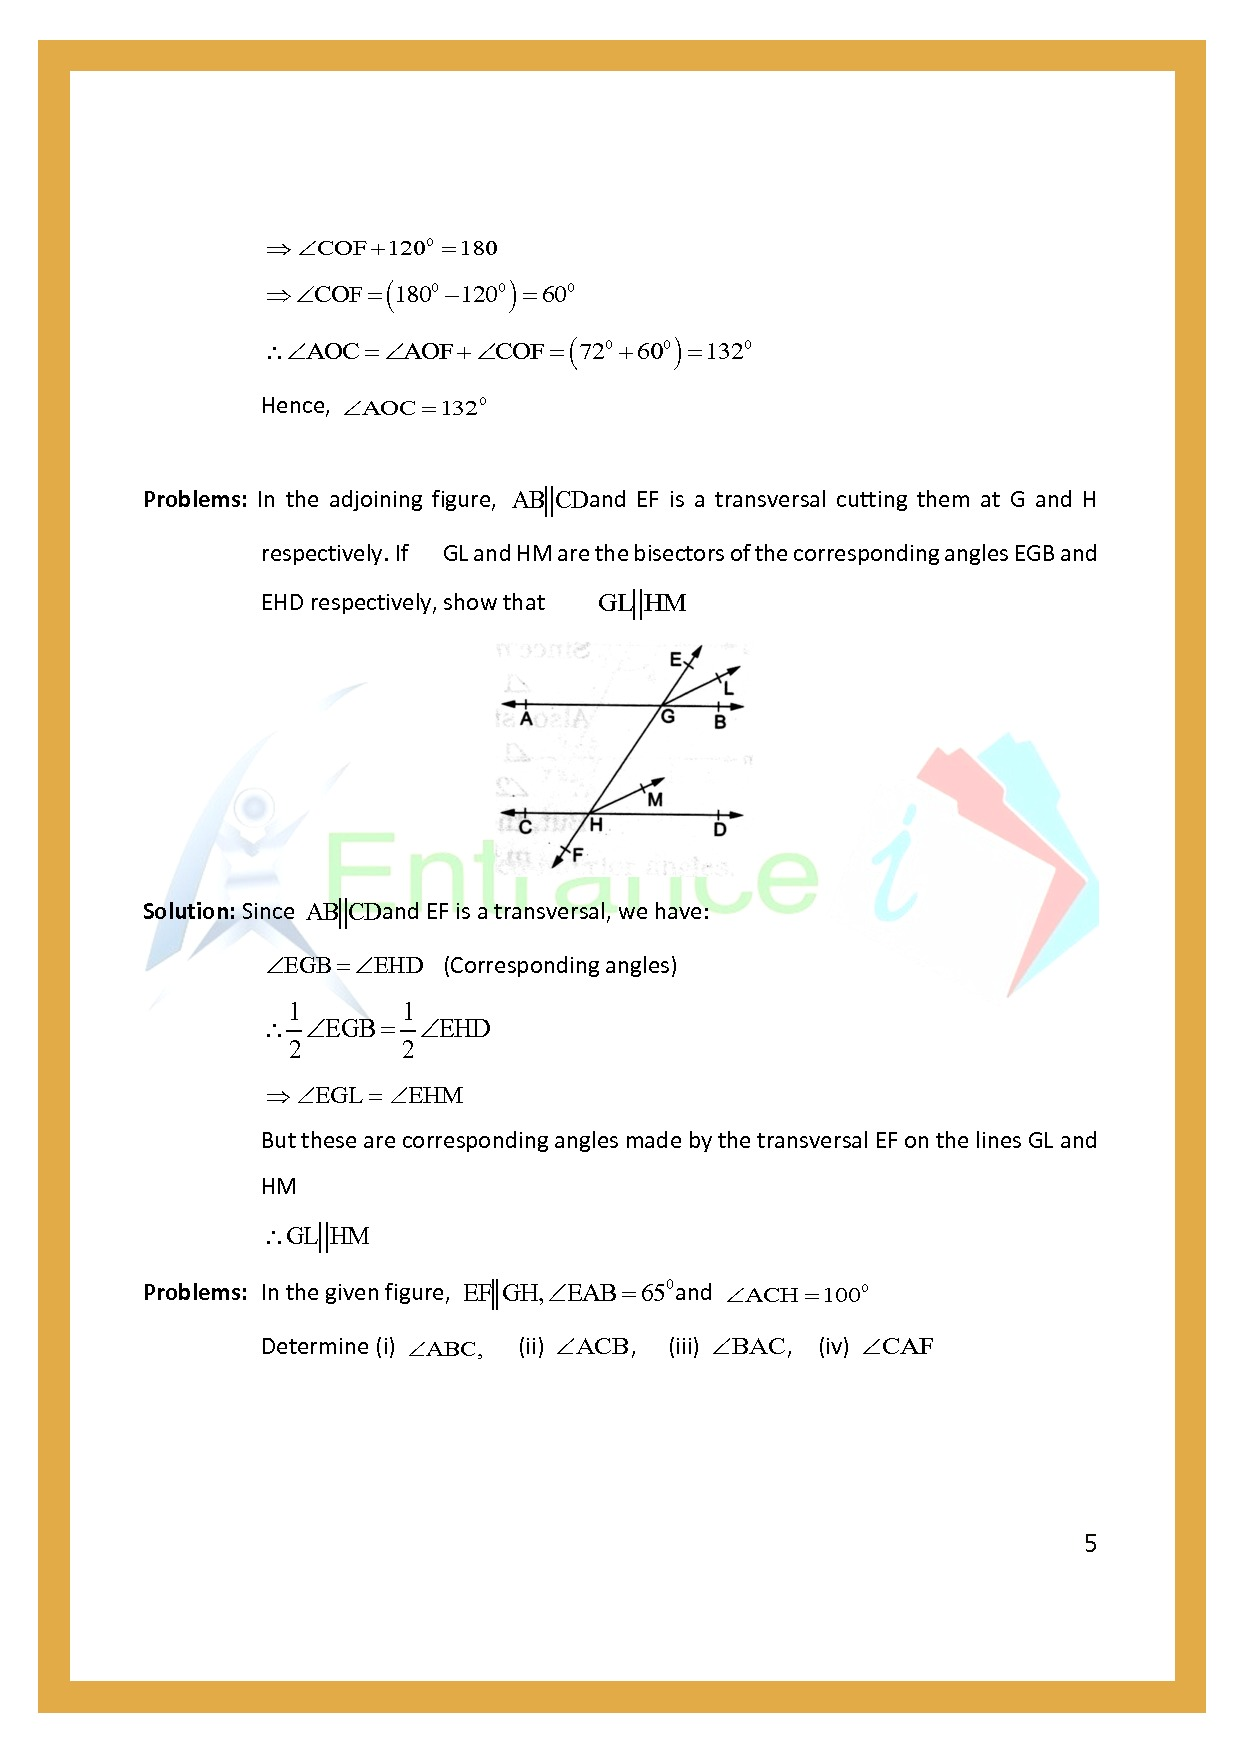 Worksheet For Class 7 Maths For Chapter 11 Lines Angles